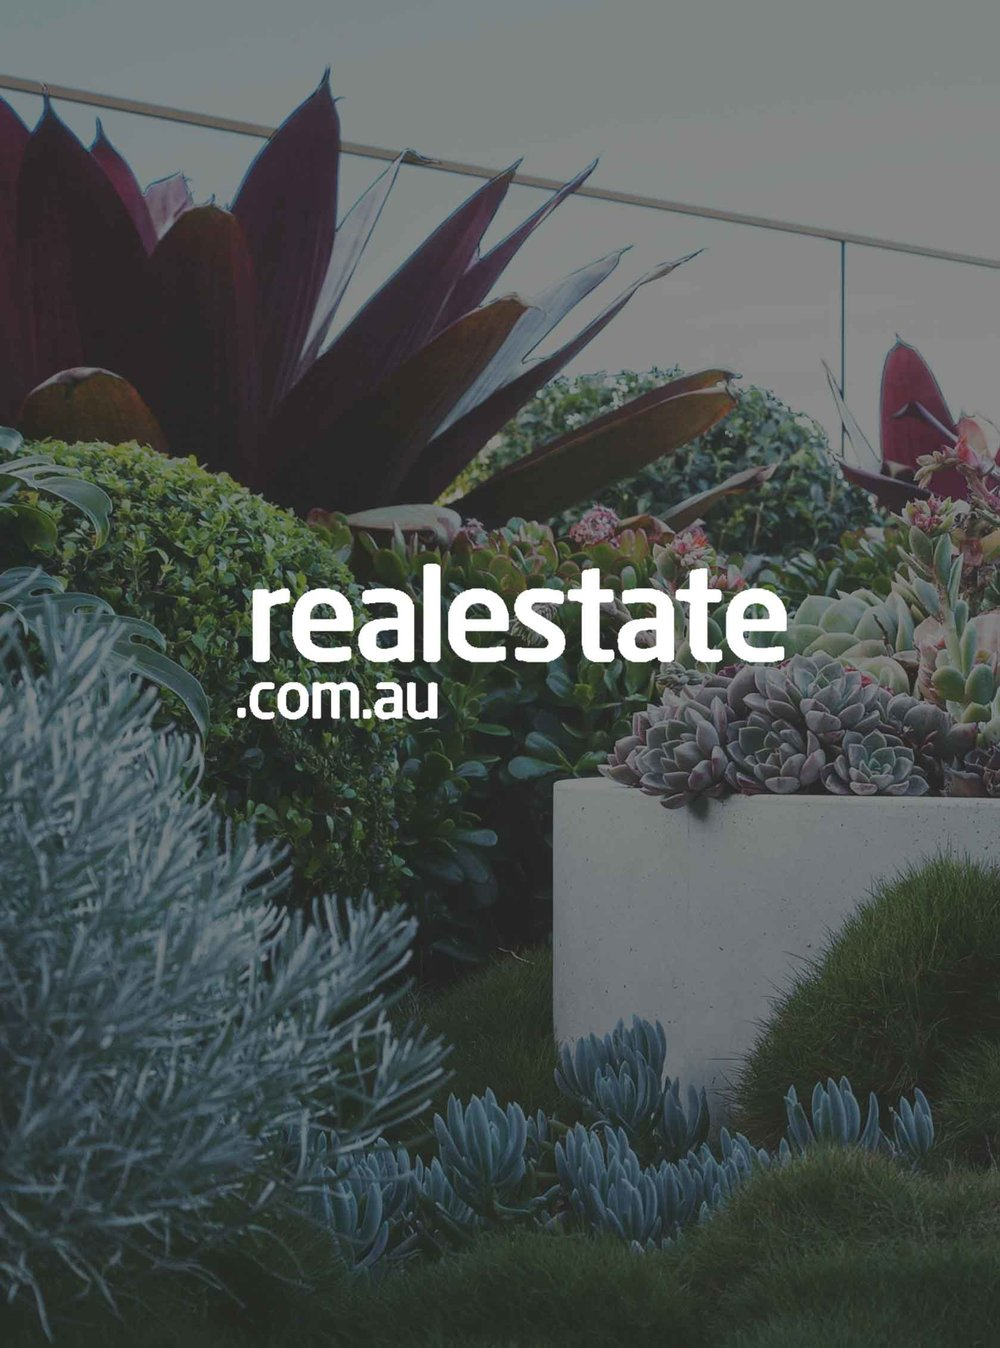 RealEstate.com.au - 'How to create big impact in a small garden'Oct 16, 2017